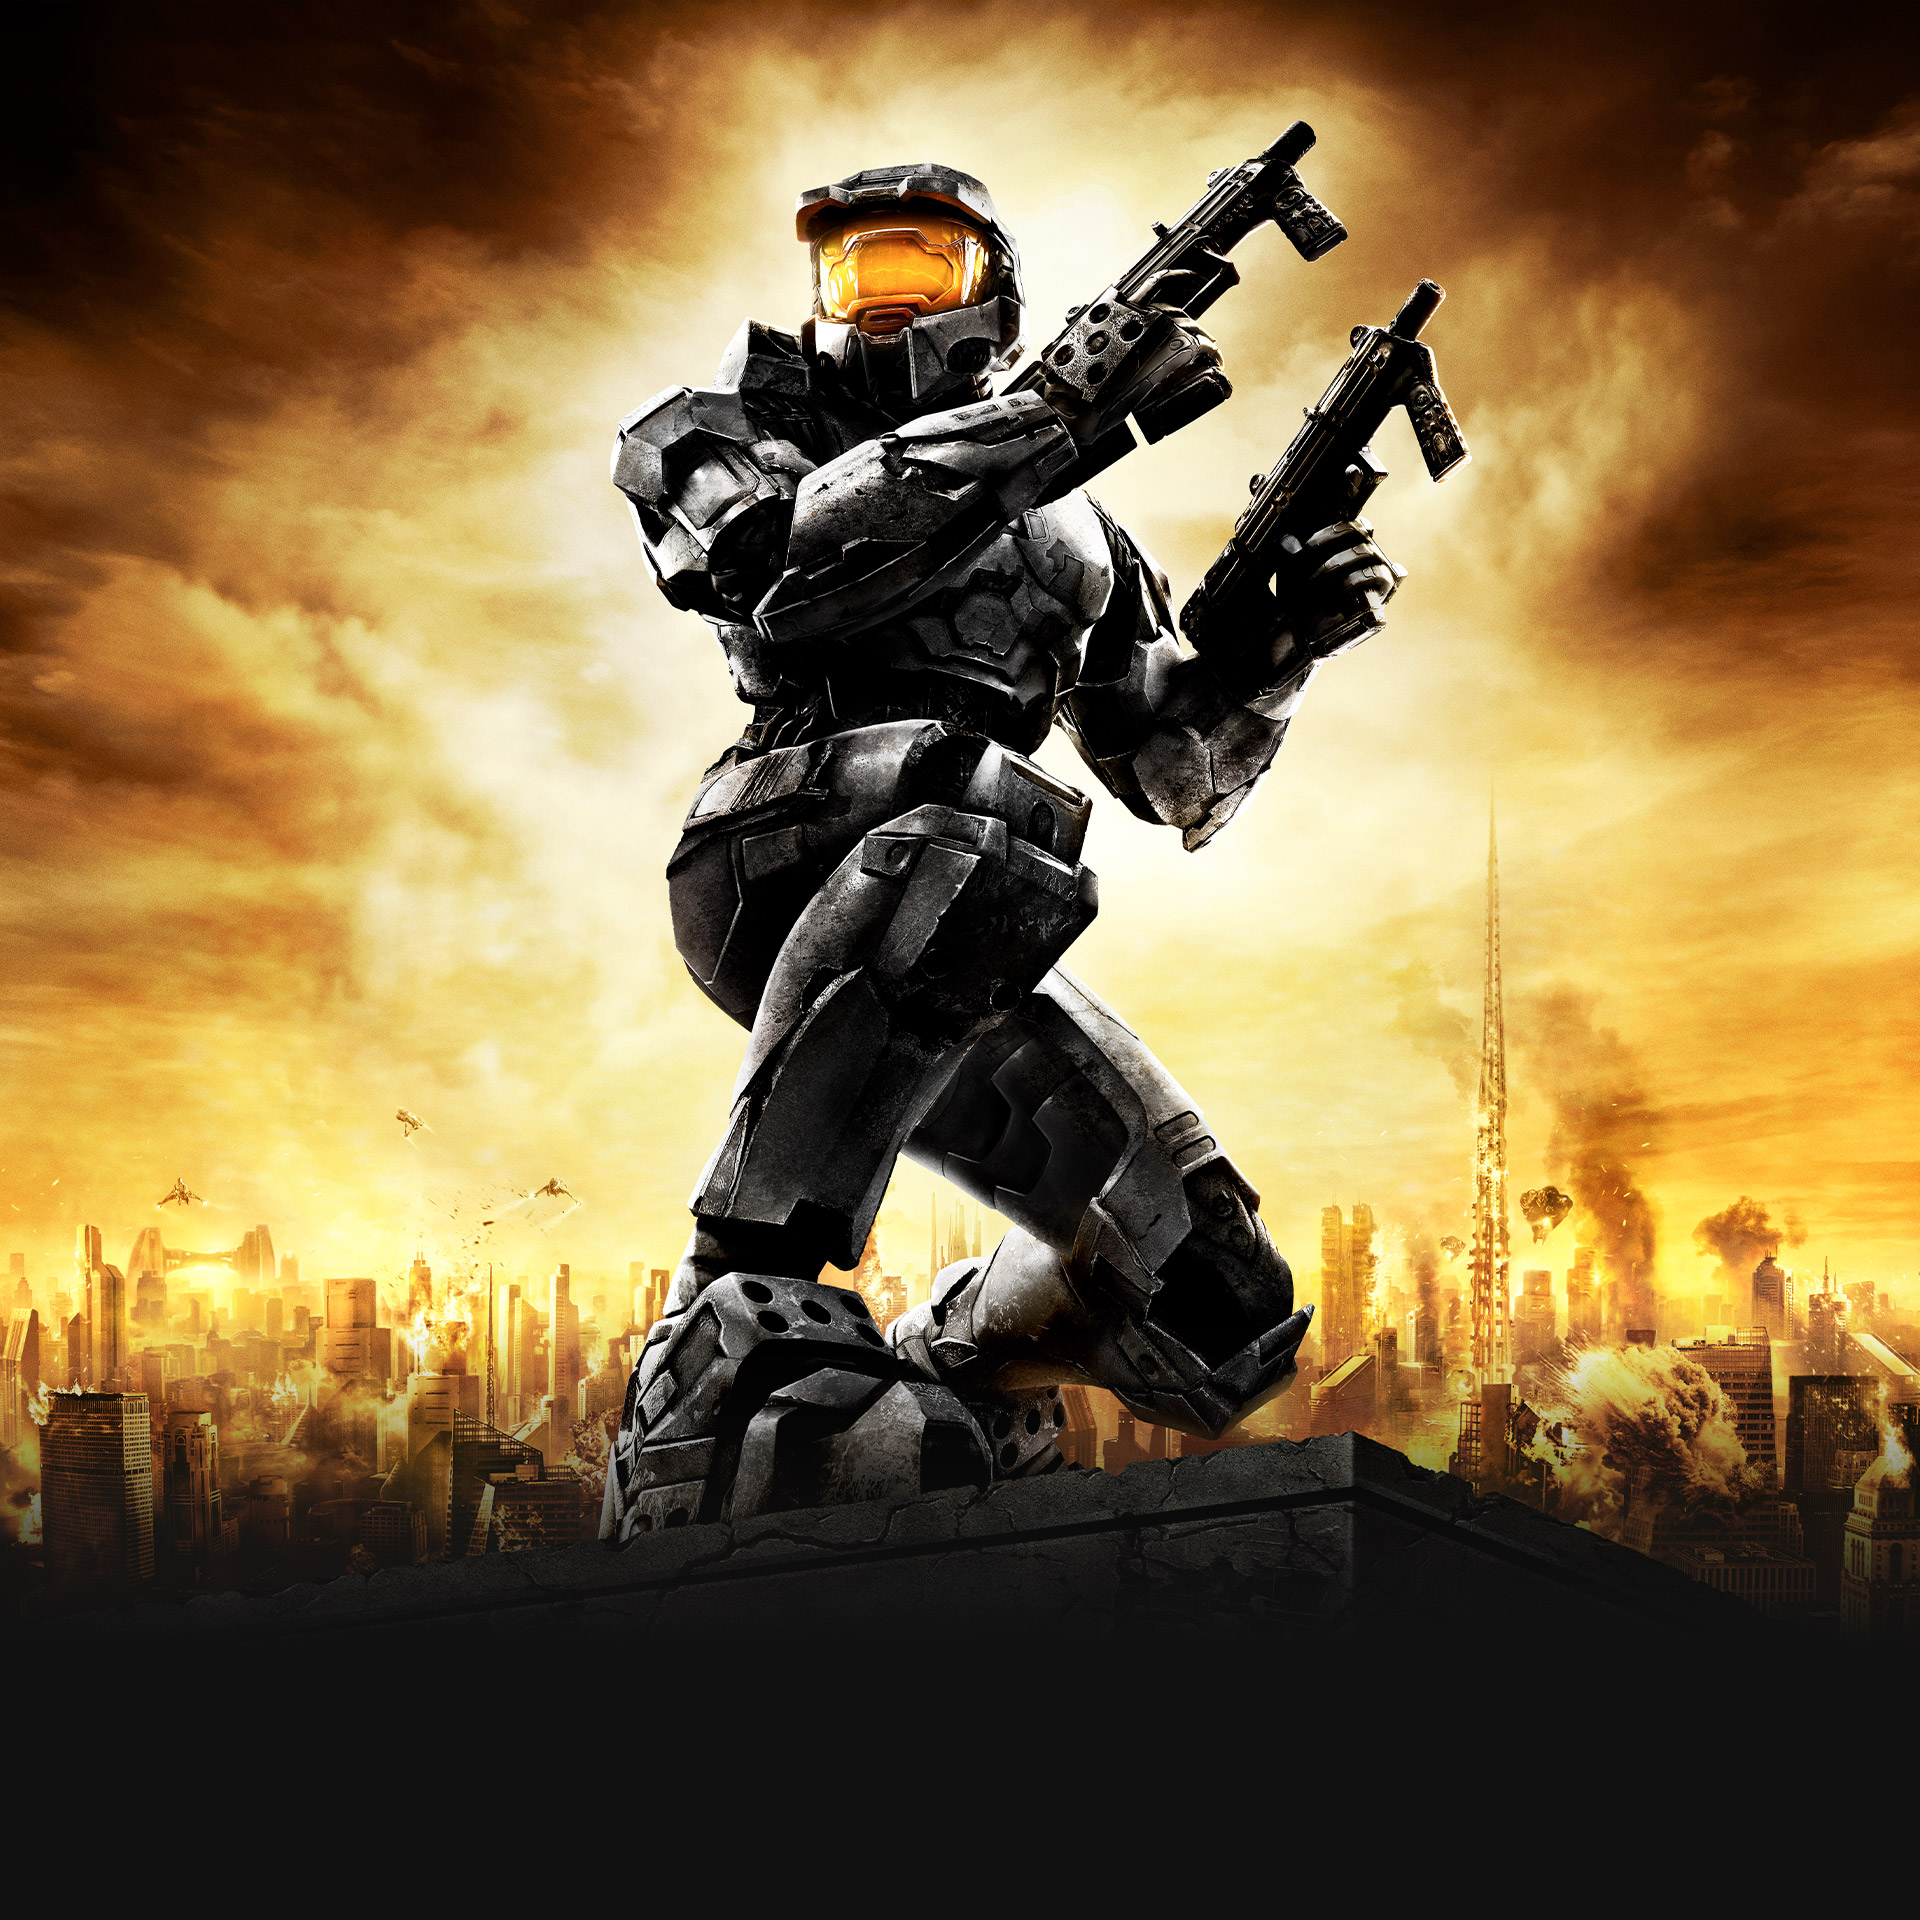 Halo 2: Anniversary, Master Chief kneeling overlooking a burning city with pistols drawn